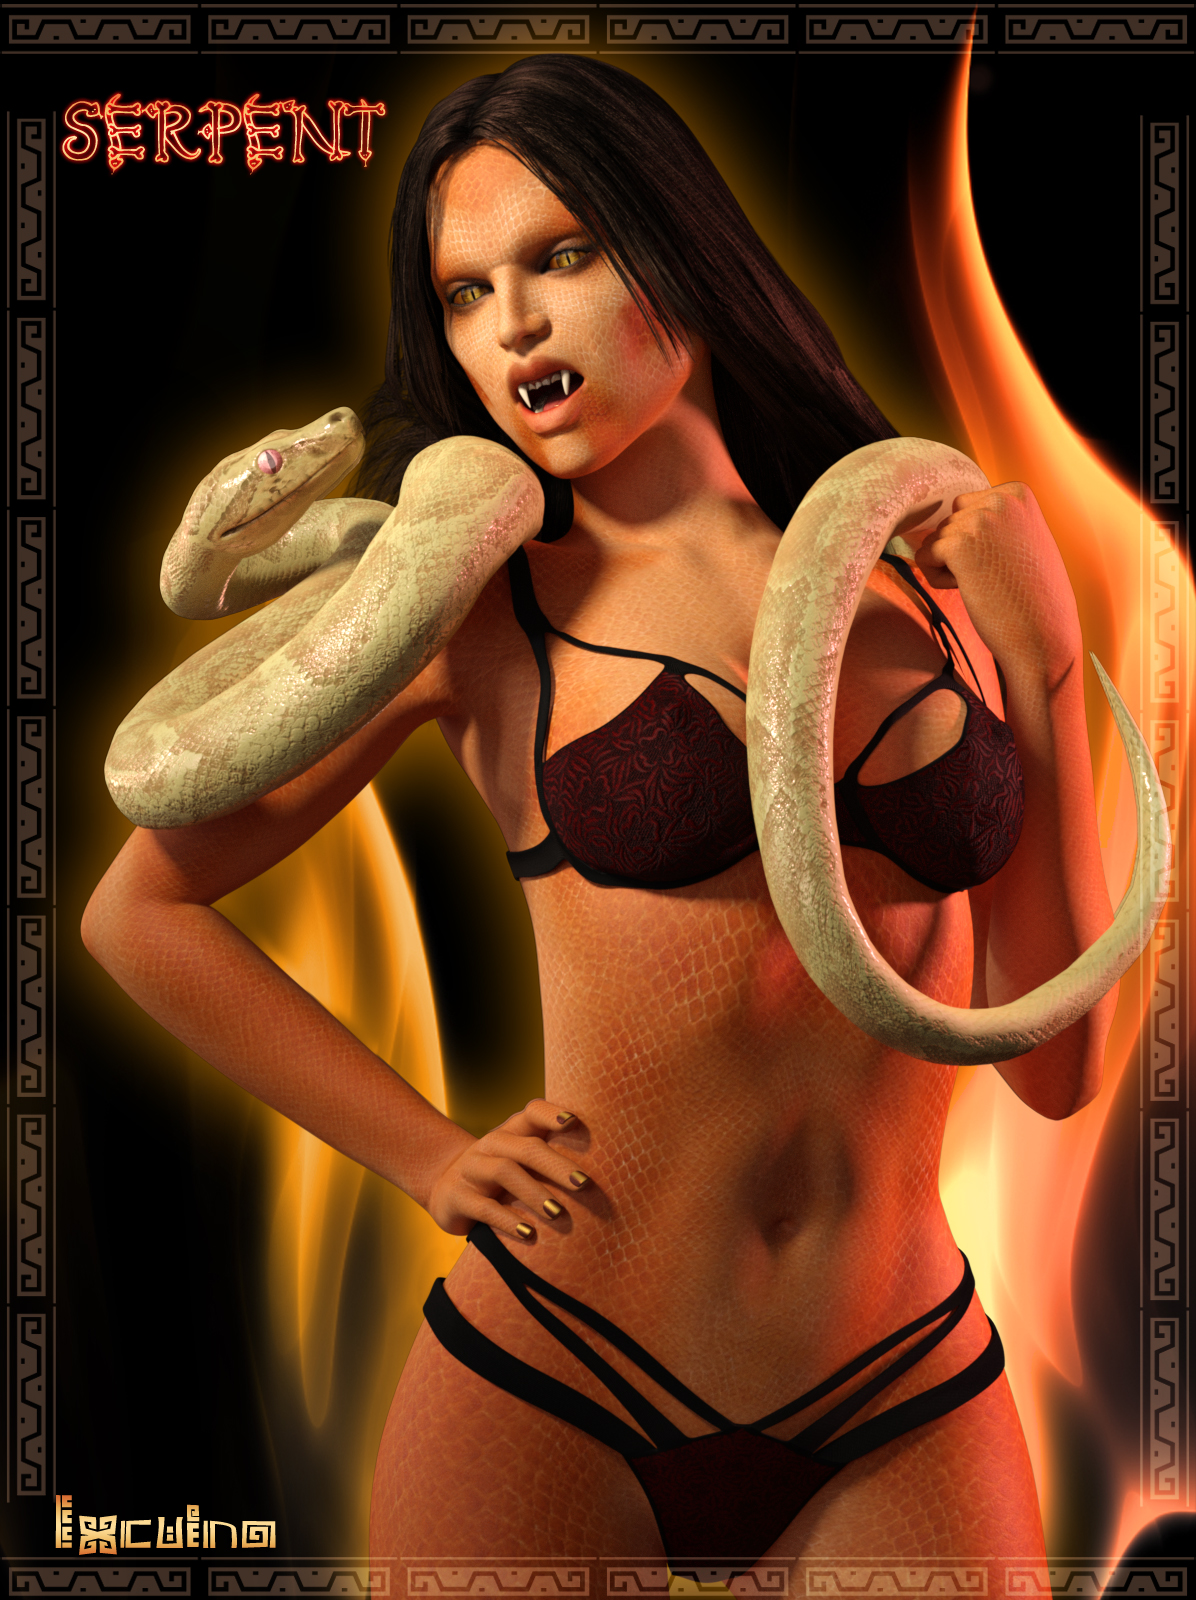 Ixcuina Serpent Addon for G3F